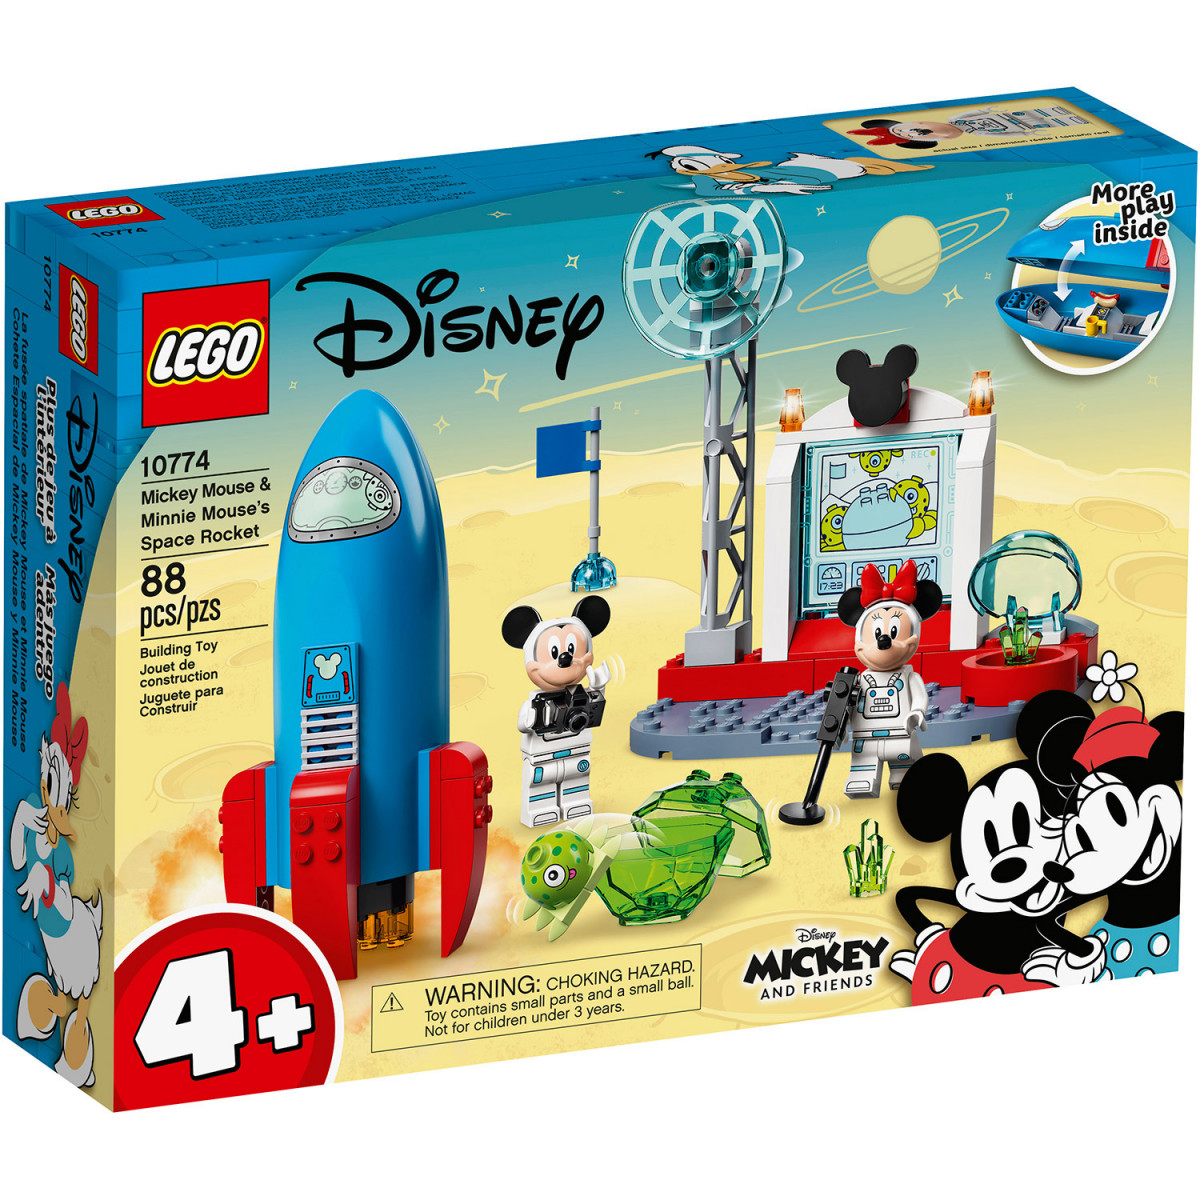 LEGO 4+ MICKEY MOUSE & MINNIE MOUSE'S SPACE ROCKET